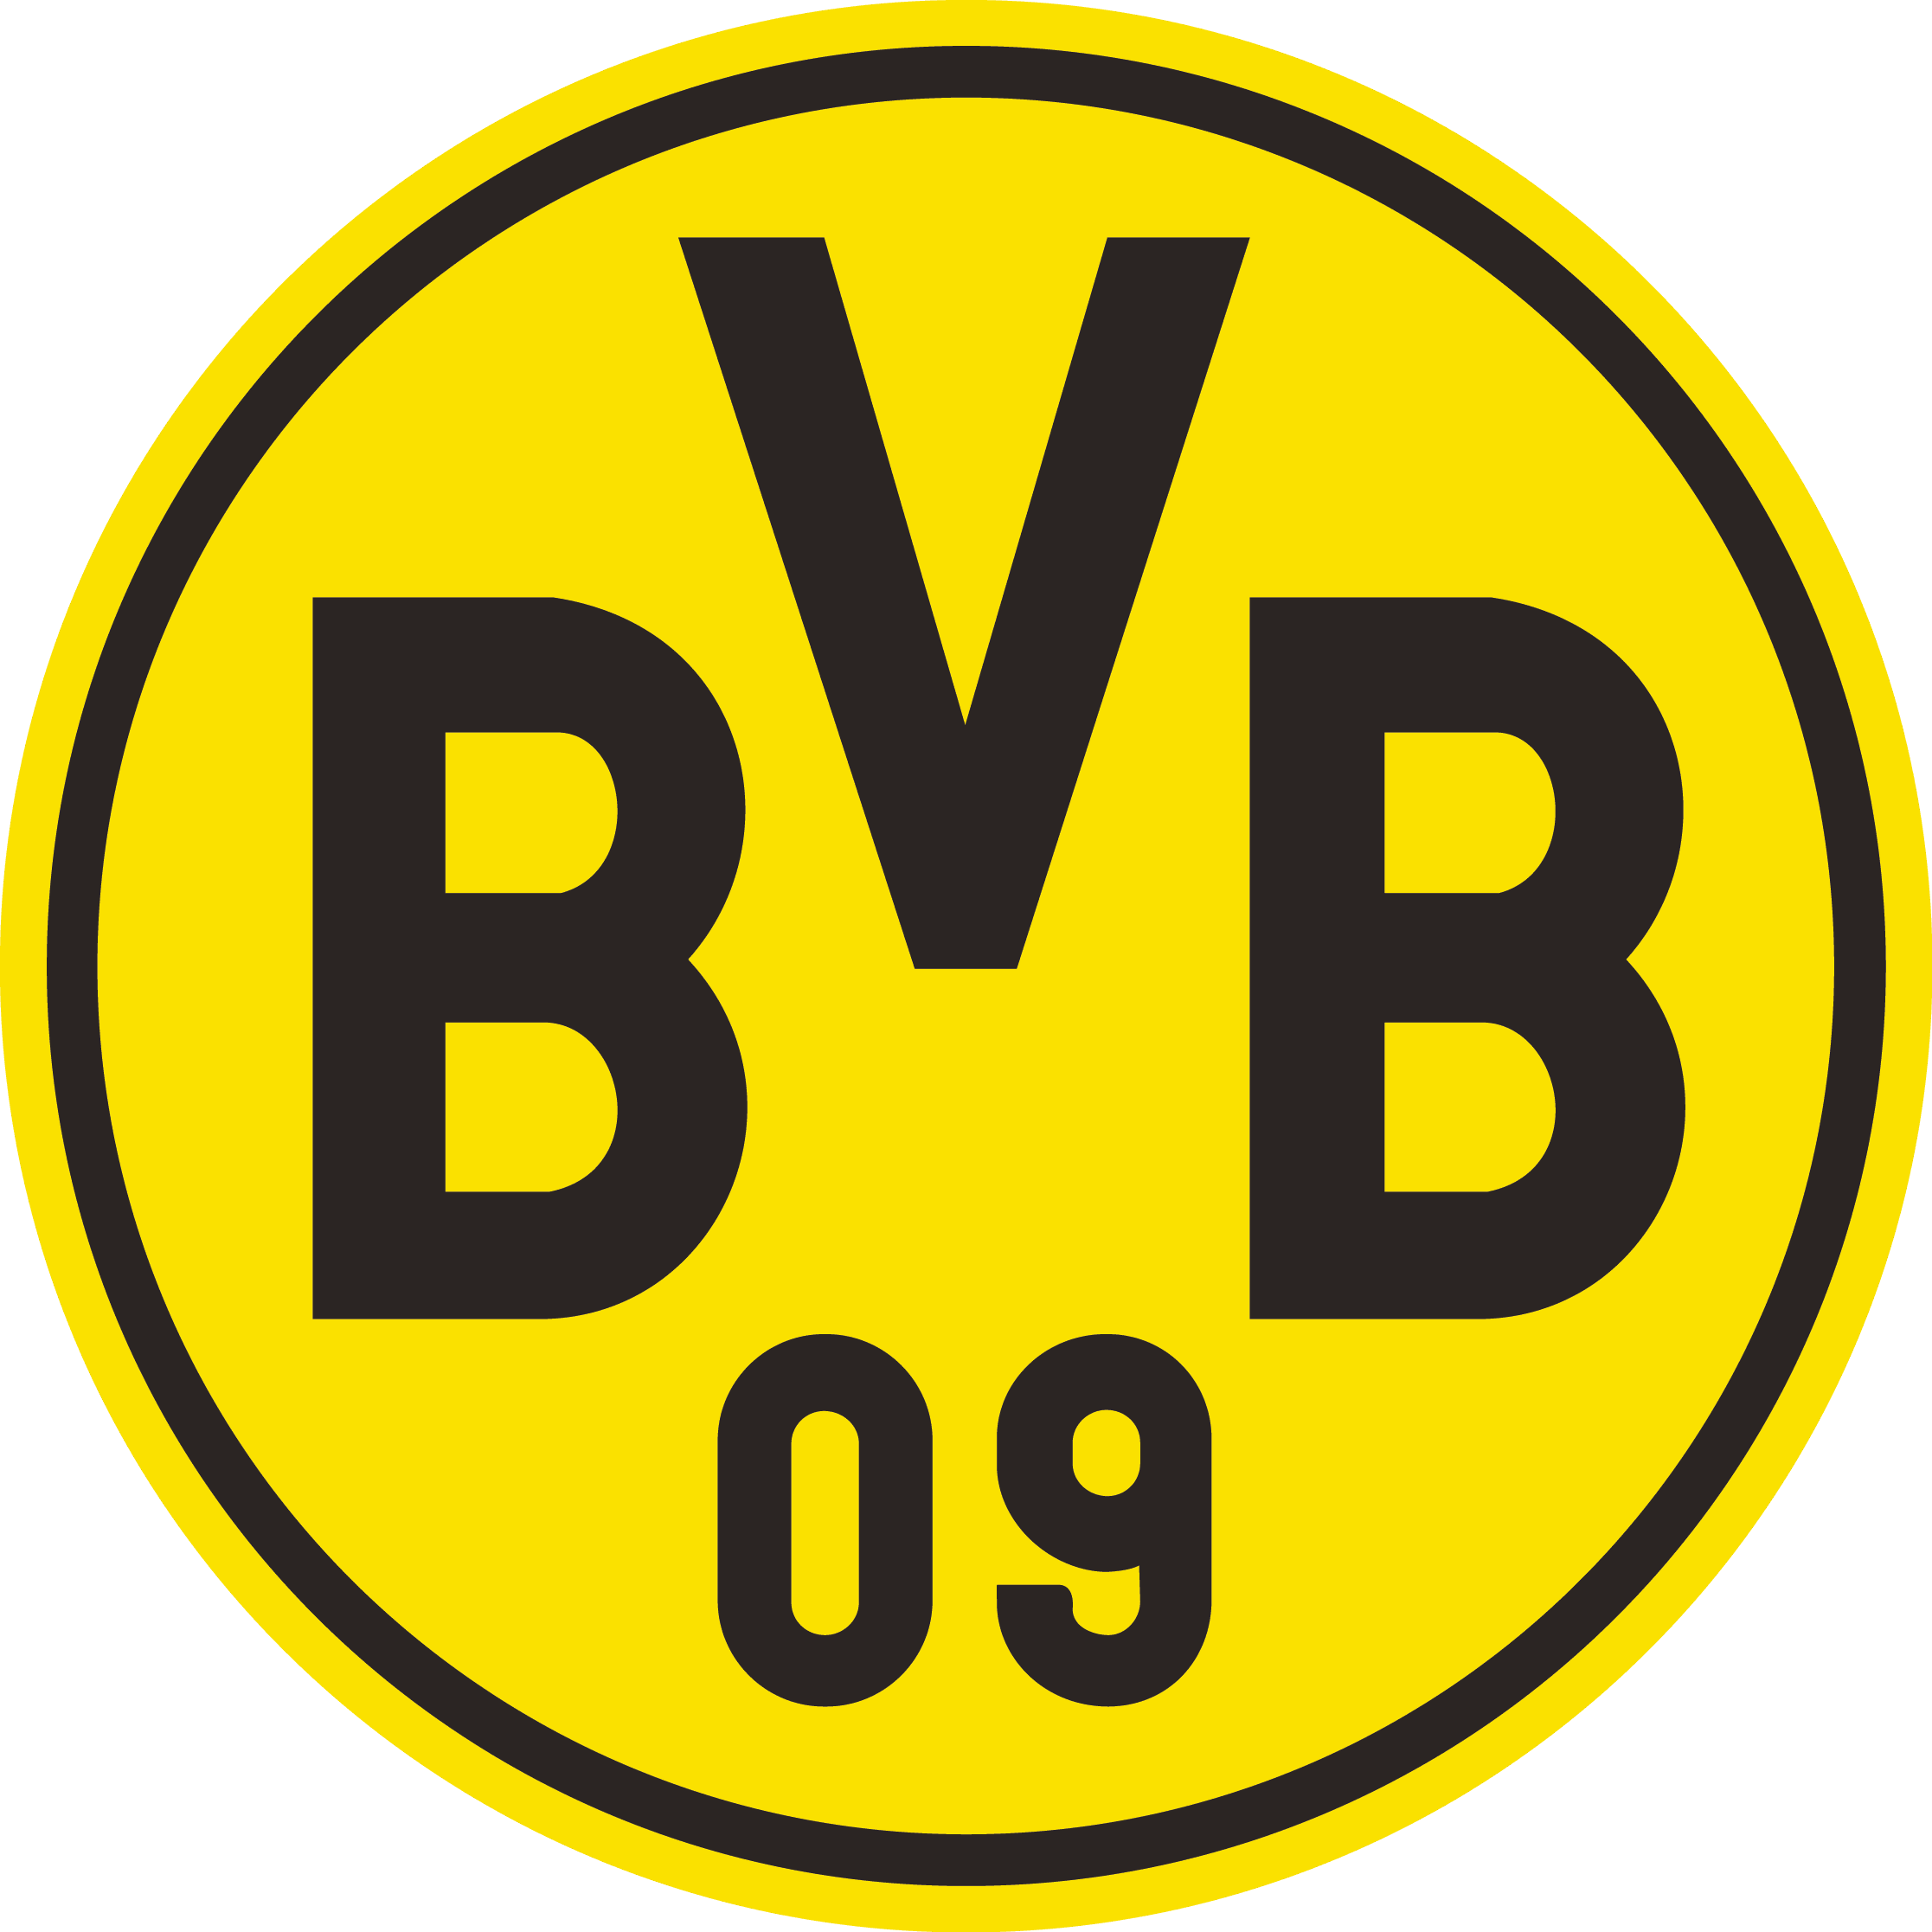 Borussia Dortmund Logo [EPS File] Vector EPS Free Download, Logo, Icons, Brand Emblems